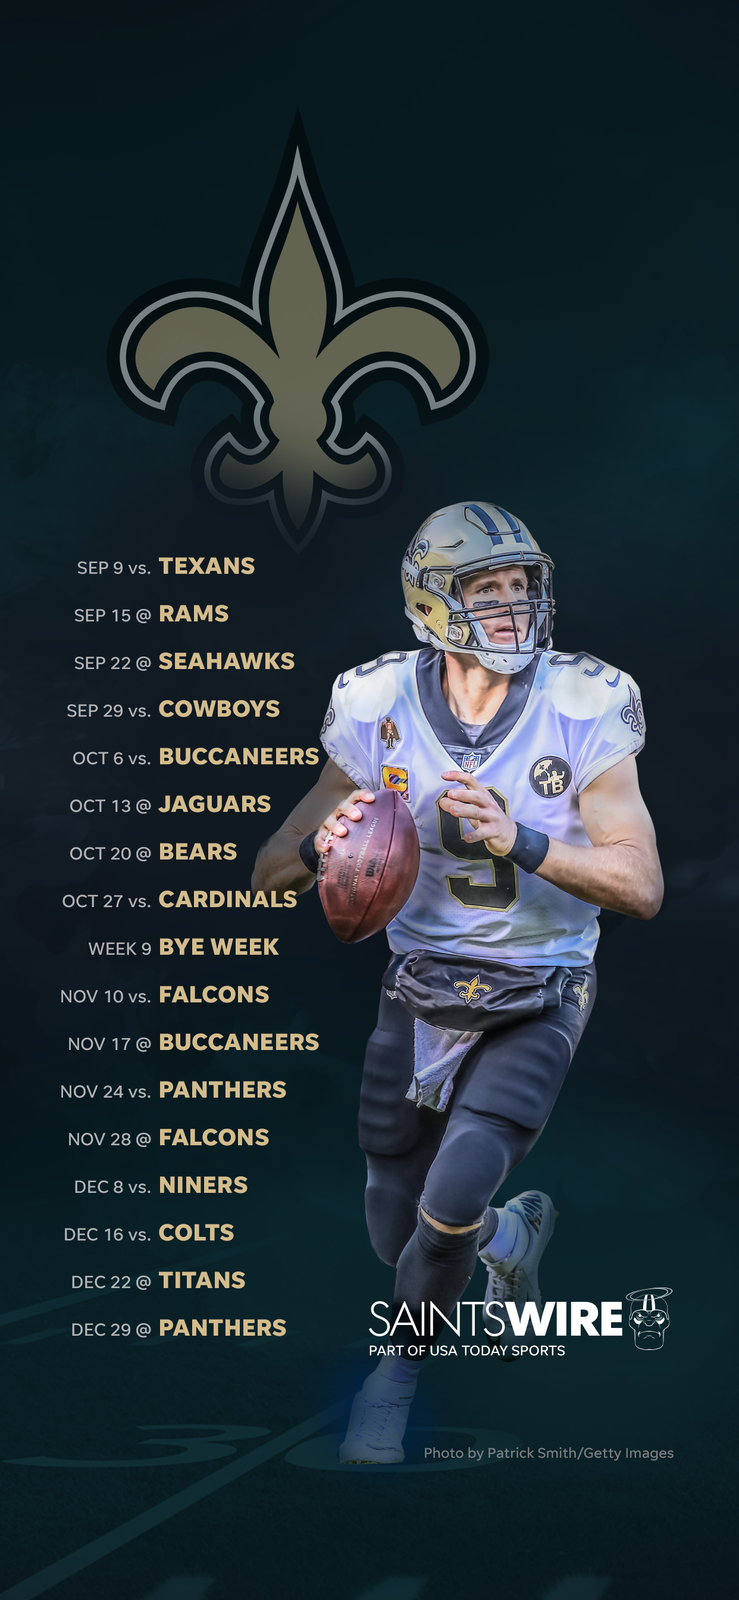 2019 New Orleans Saints schedule Downloadable wallpaper 739x1600